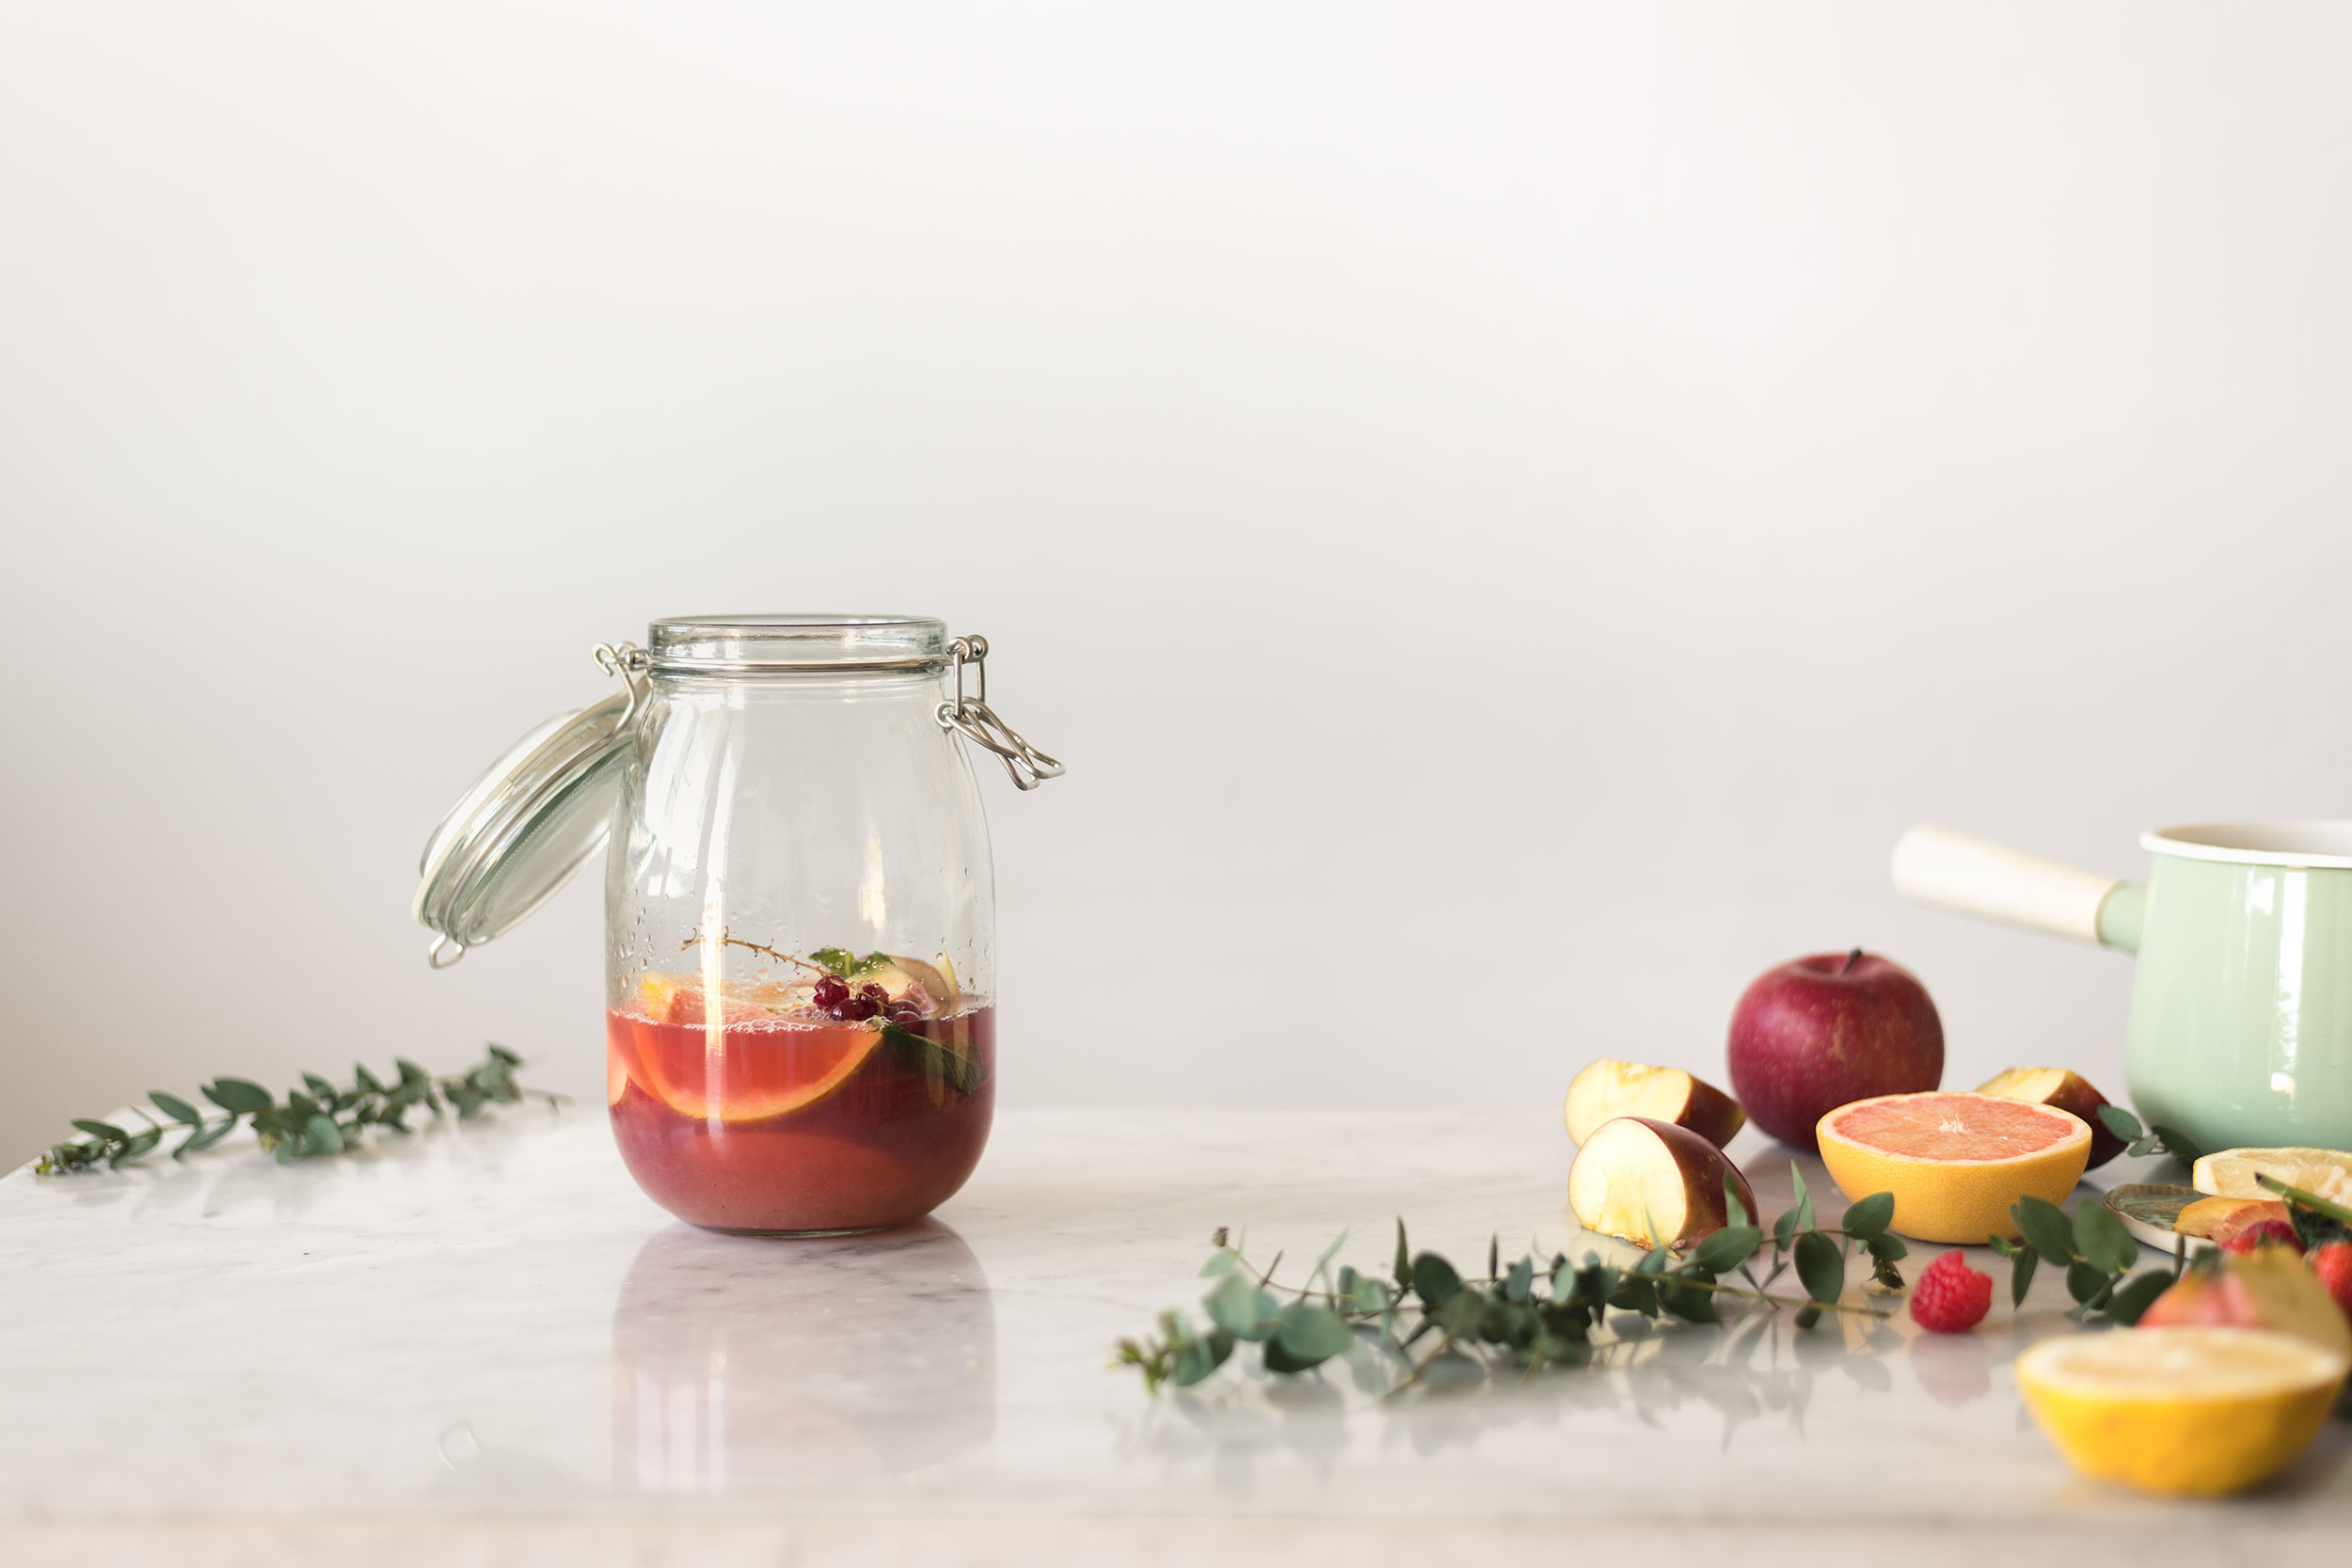 fruity iced tea with apples grapefruit raspberries and red currant